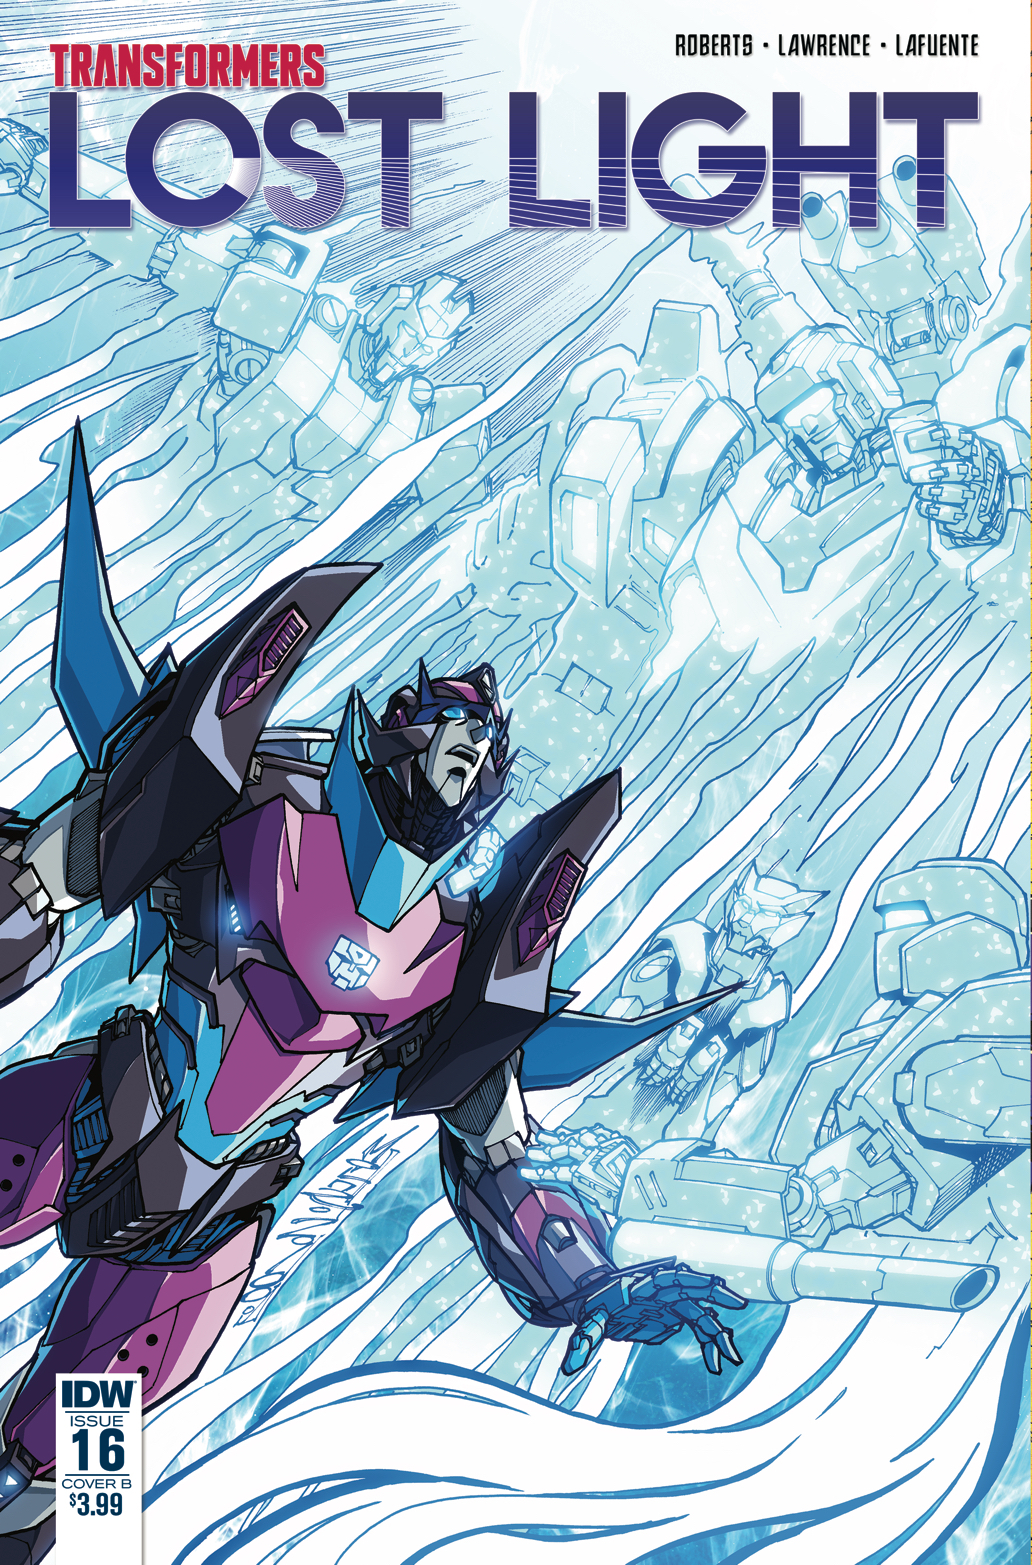 TRANSFORMERS LOST LIGHT #16 CVR B MILNE